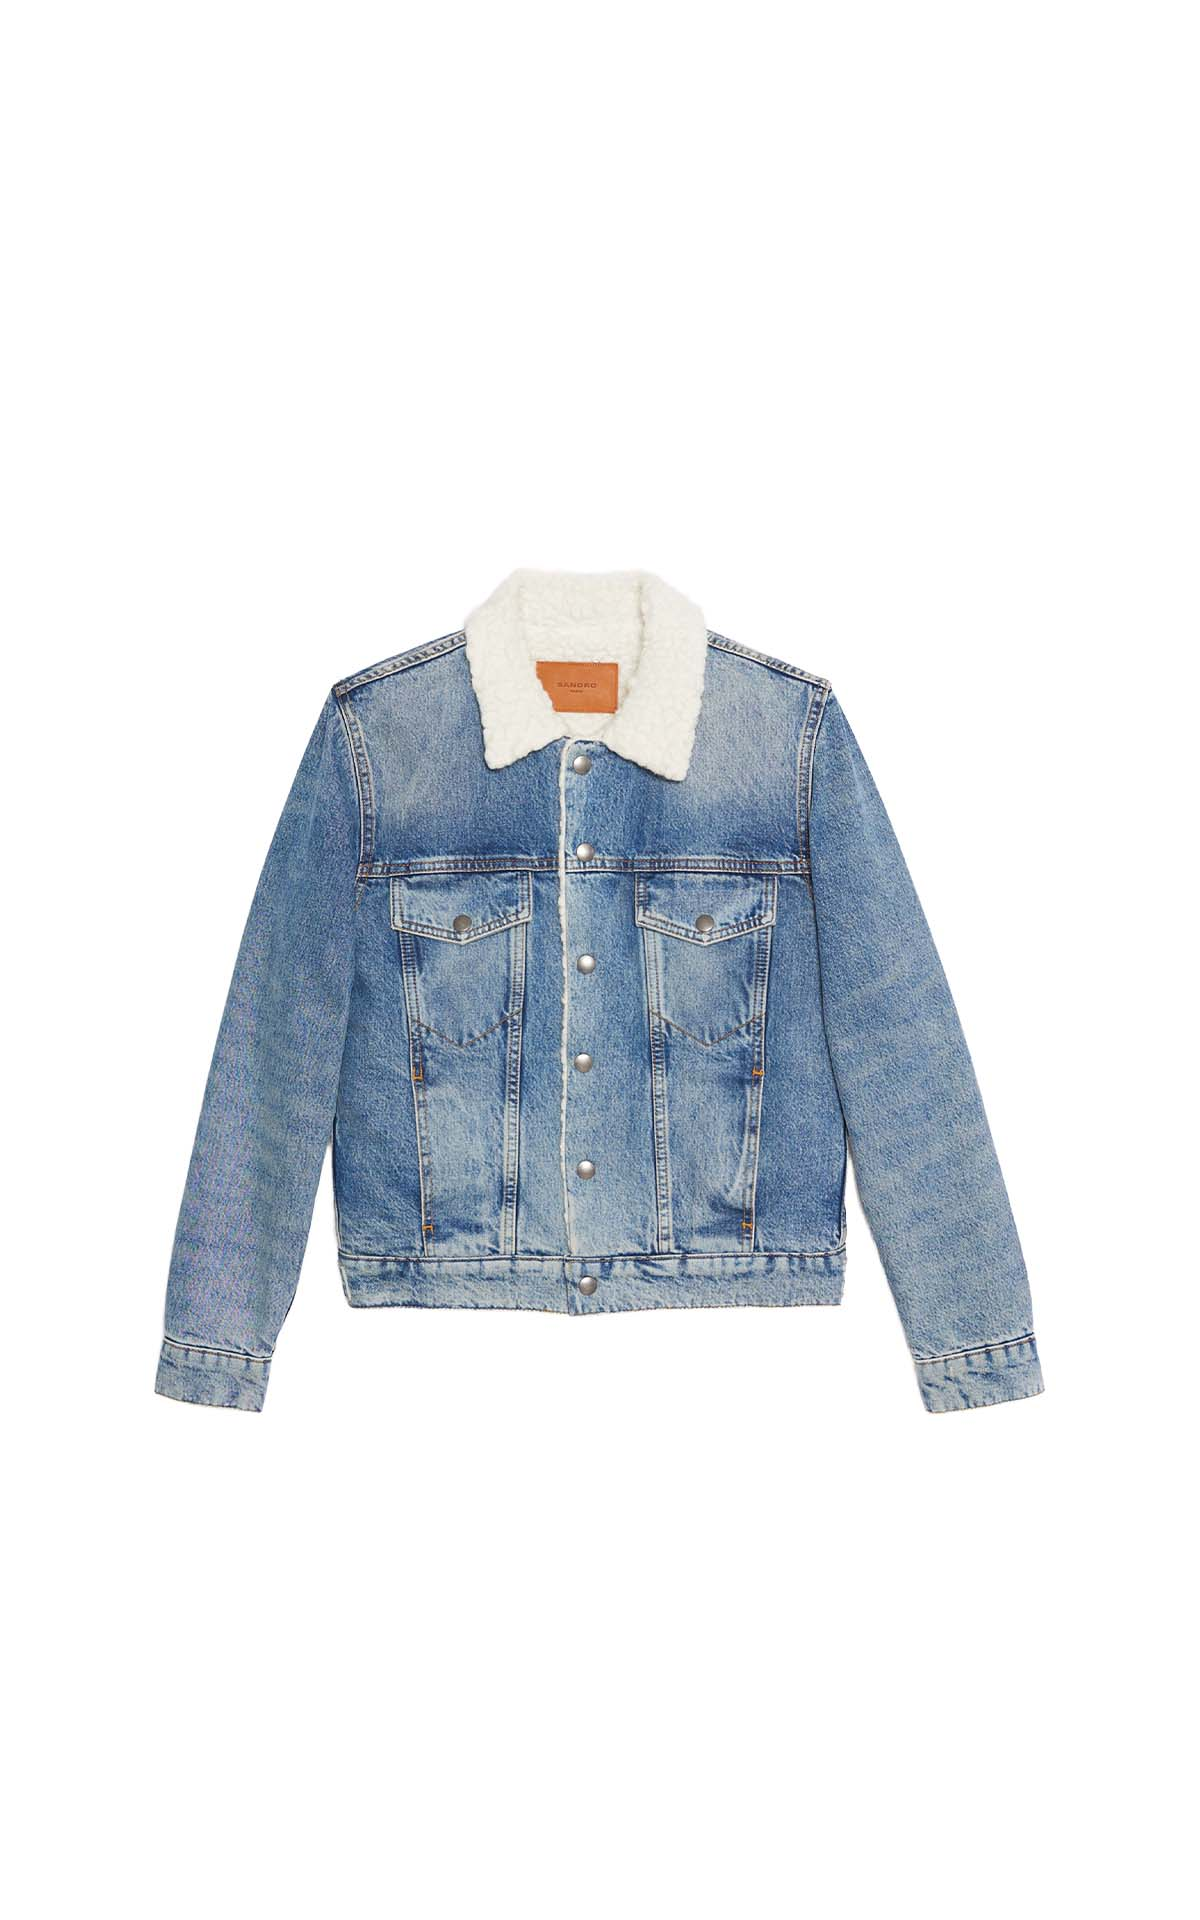 Sandro paris shearling denim jacket at The Bicester Village Shopping Collection